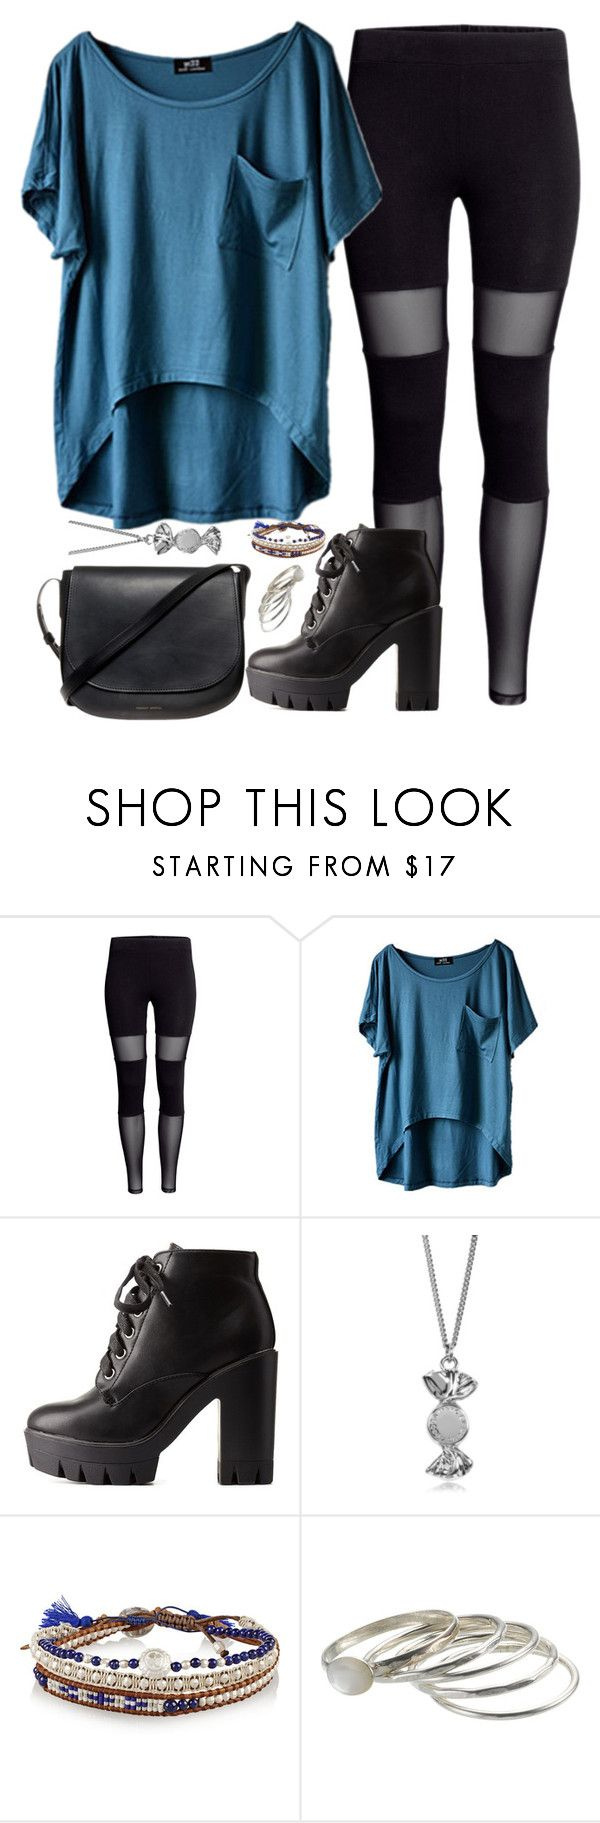 """""""You're the one who pollutes me./Eres tú la que me contamina."""" by rocketsheep ❤ liked on Polyvore featuring H&M, Charlotte Russe, Marc by Marc Jacobs, Chan Luu, Accessorize, Mansur Gavriel, spanish, lyrics and CD9"""